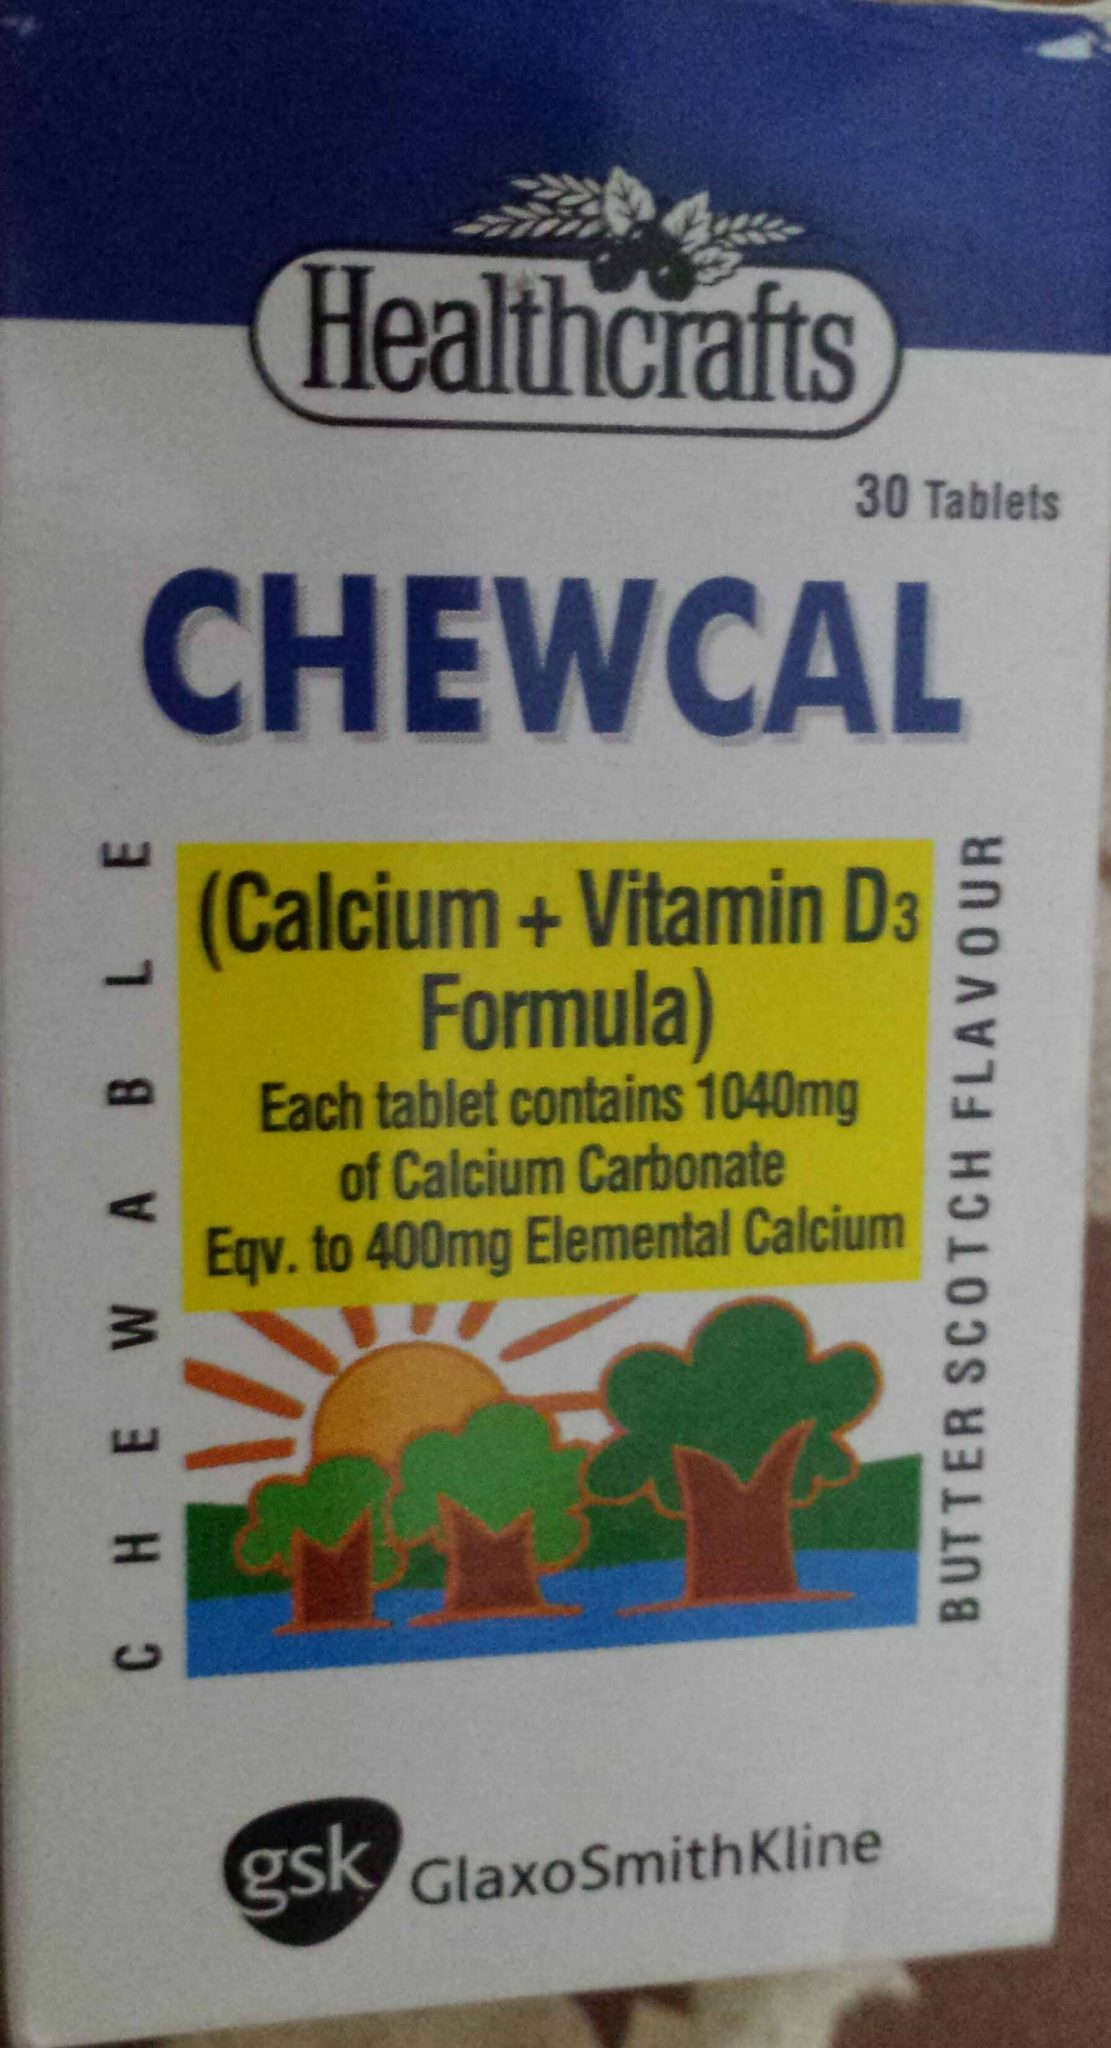 Chewcal(Calcium +Vitamin D3)Tablets Is Used For Osteoporosis , Deficiency of Vitamin D